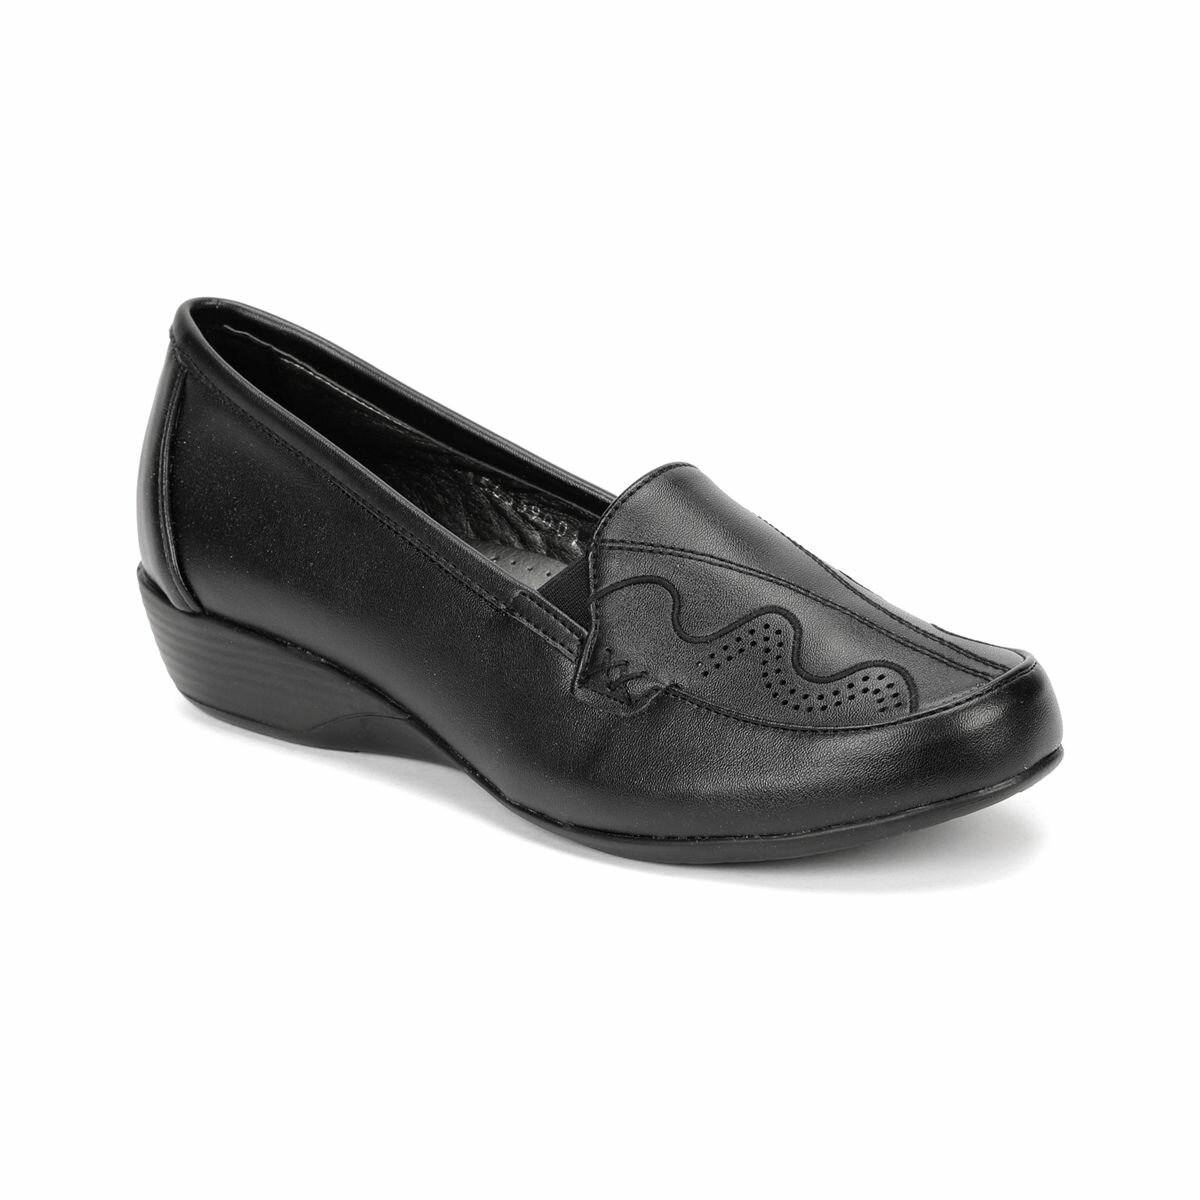 FLO 71.156559.Z Black Women 'S Classic Shoes Polaris